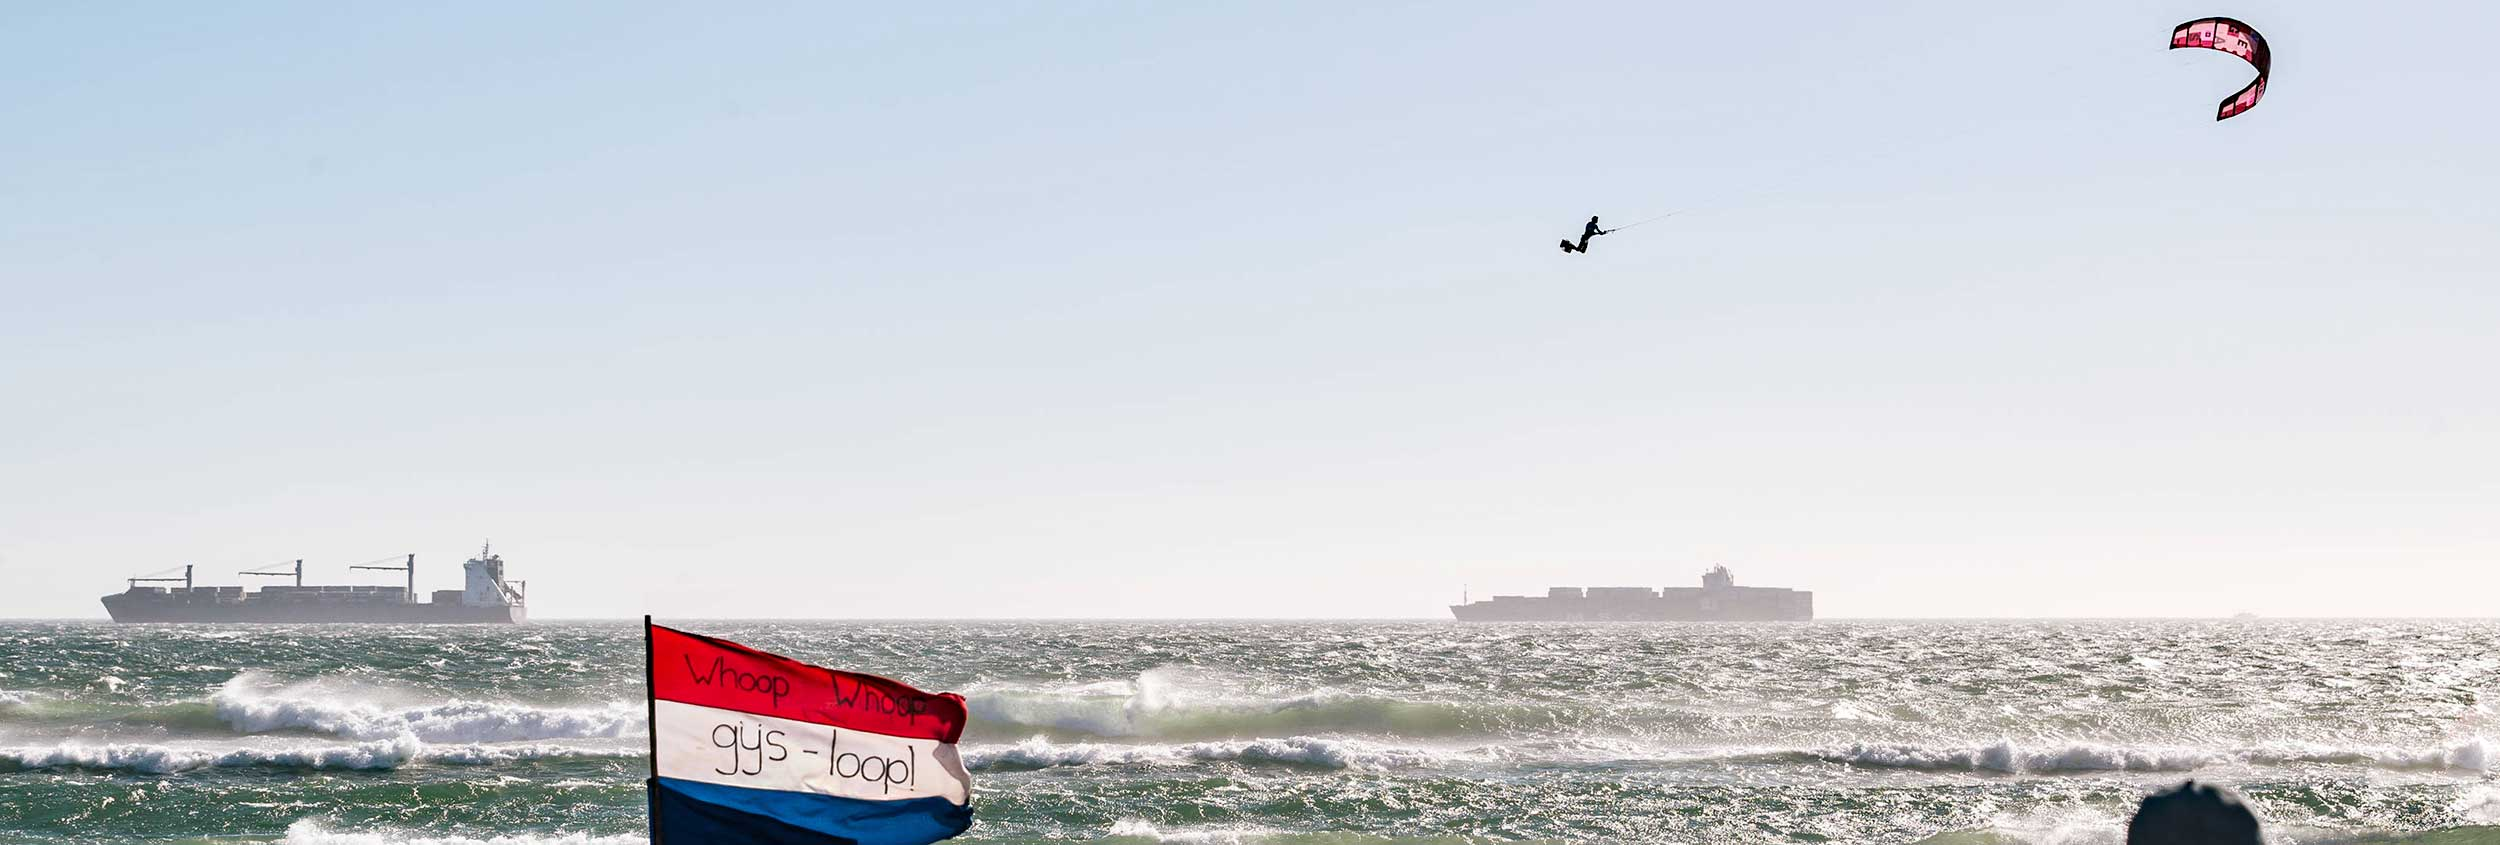 Gijs Wassenar Red Bull King of the Air 2018